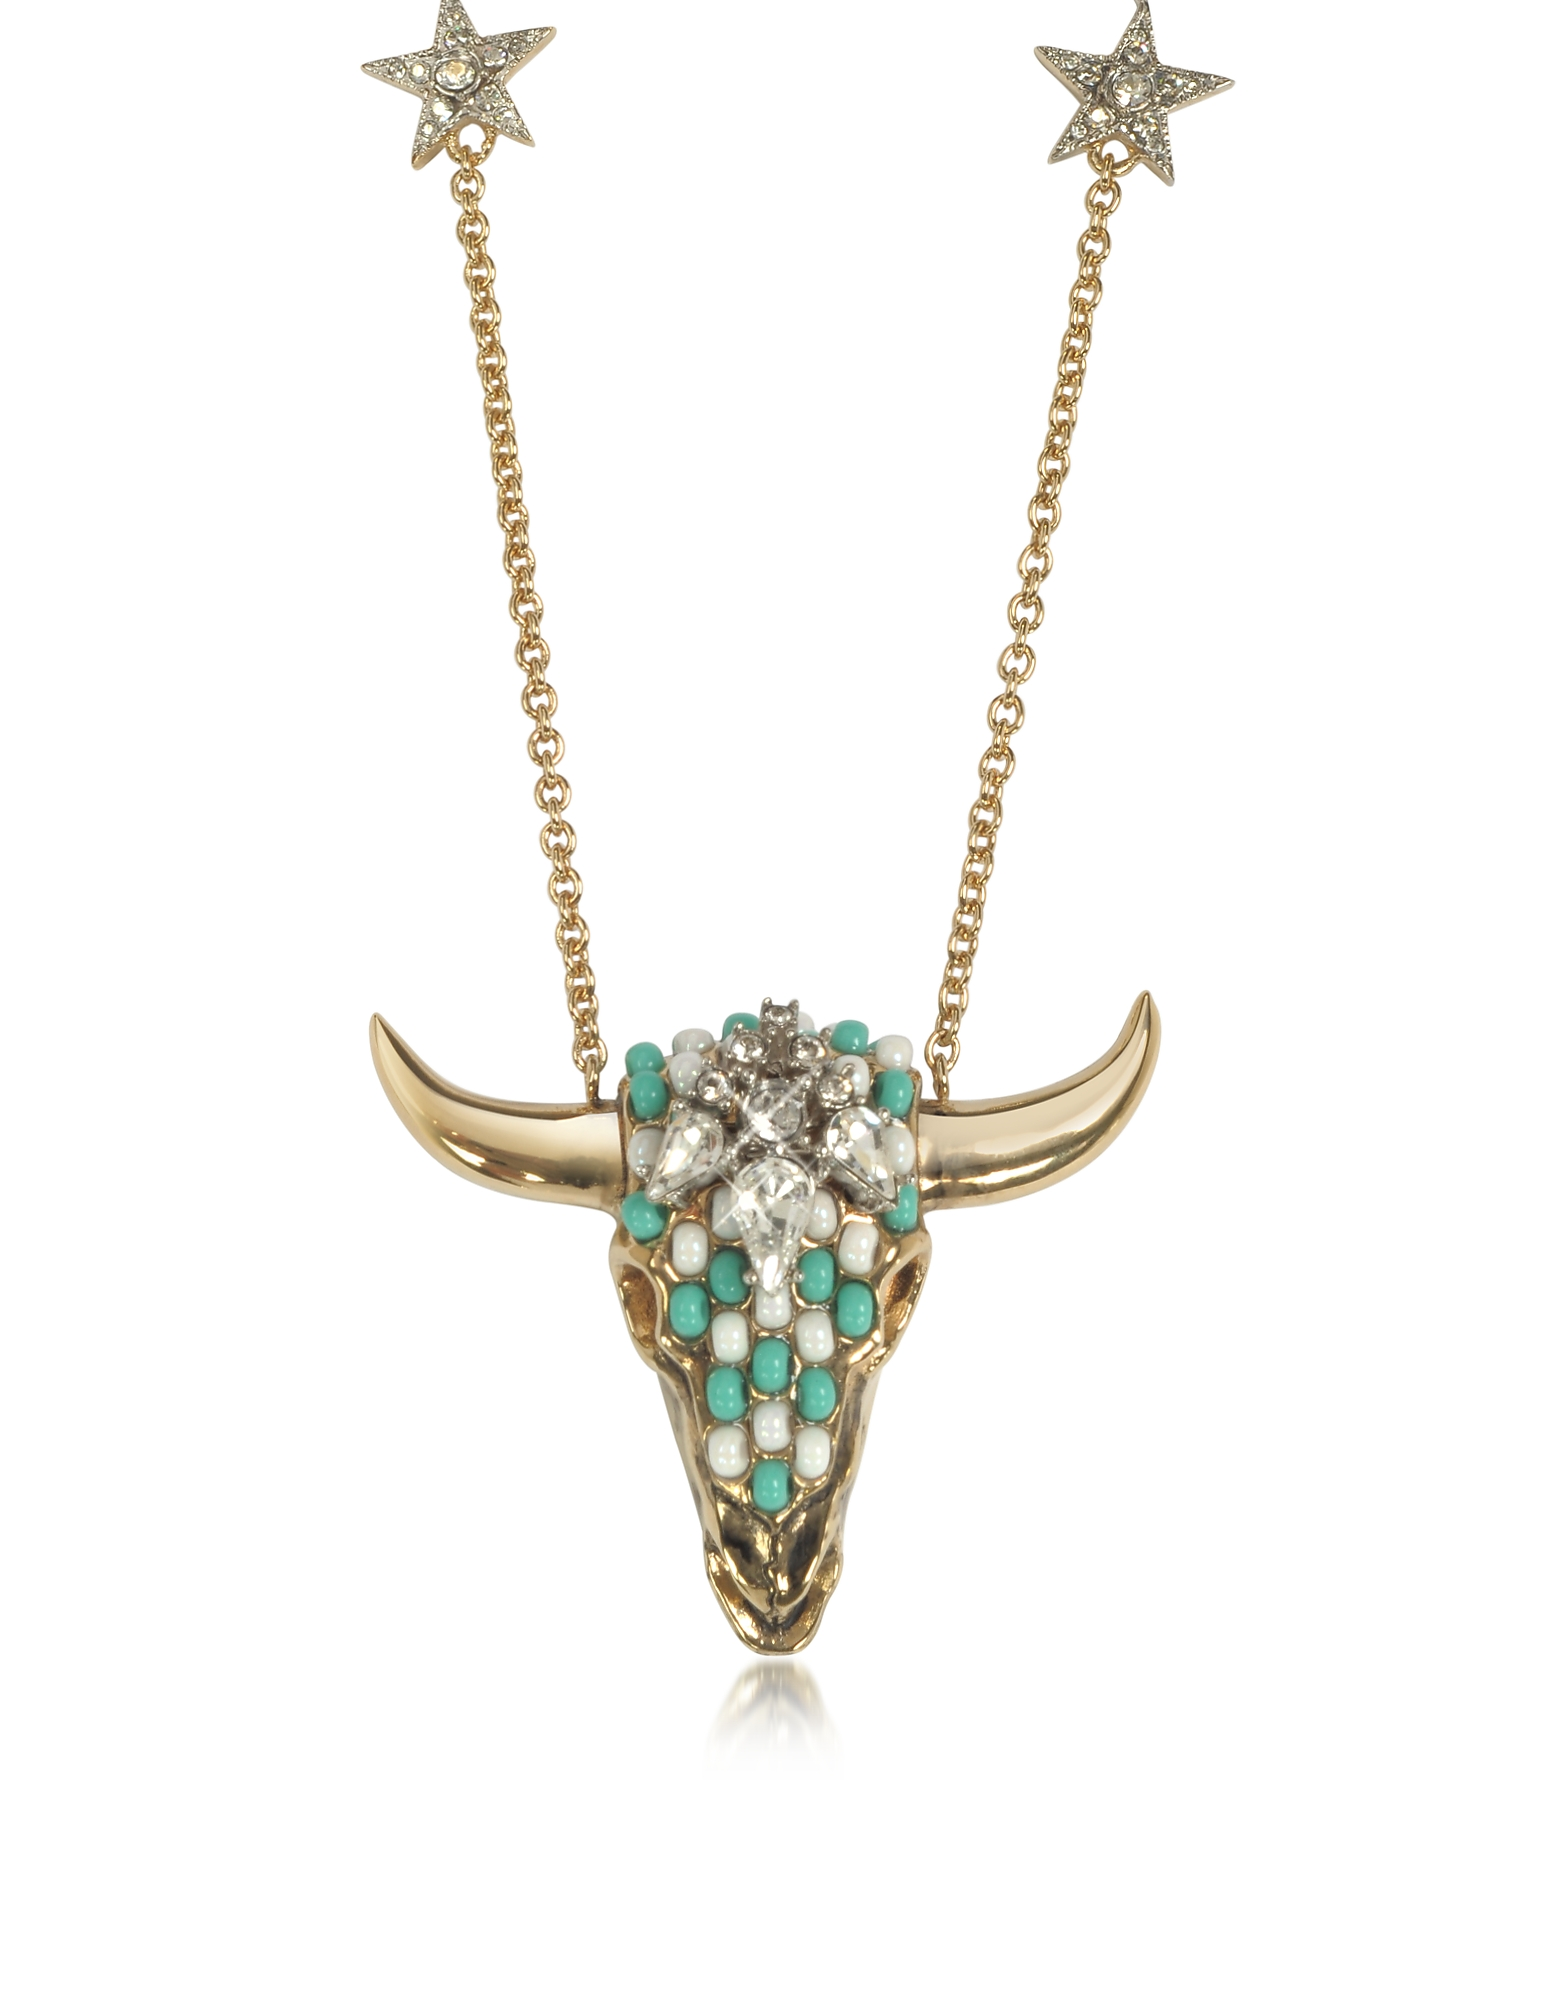 Roberto Cavalli Necklaces, Goldtone Brass Long Necklace w/Crystals and Mint Green Beads